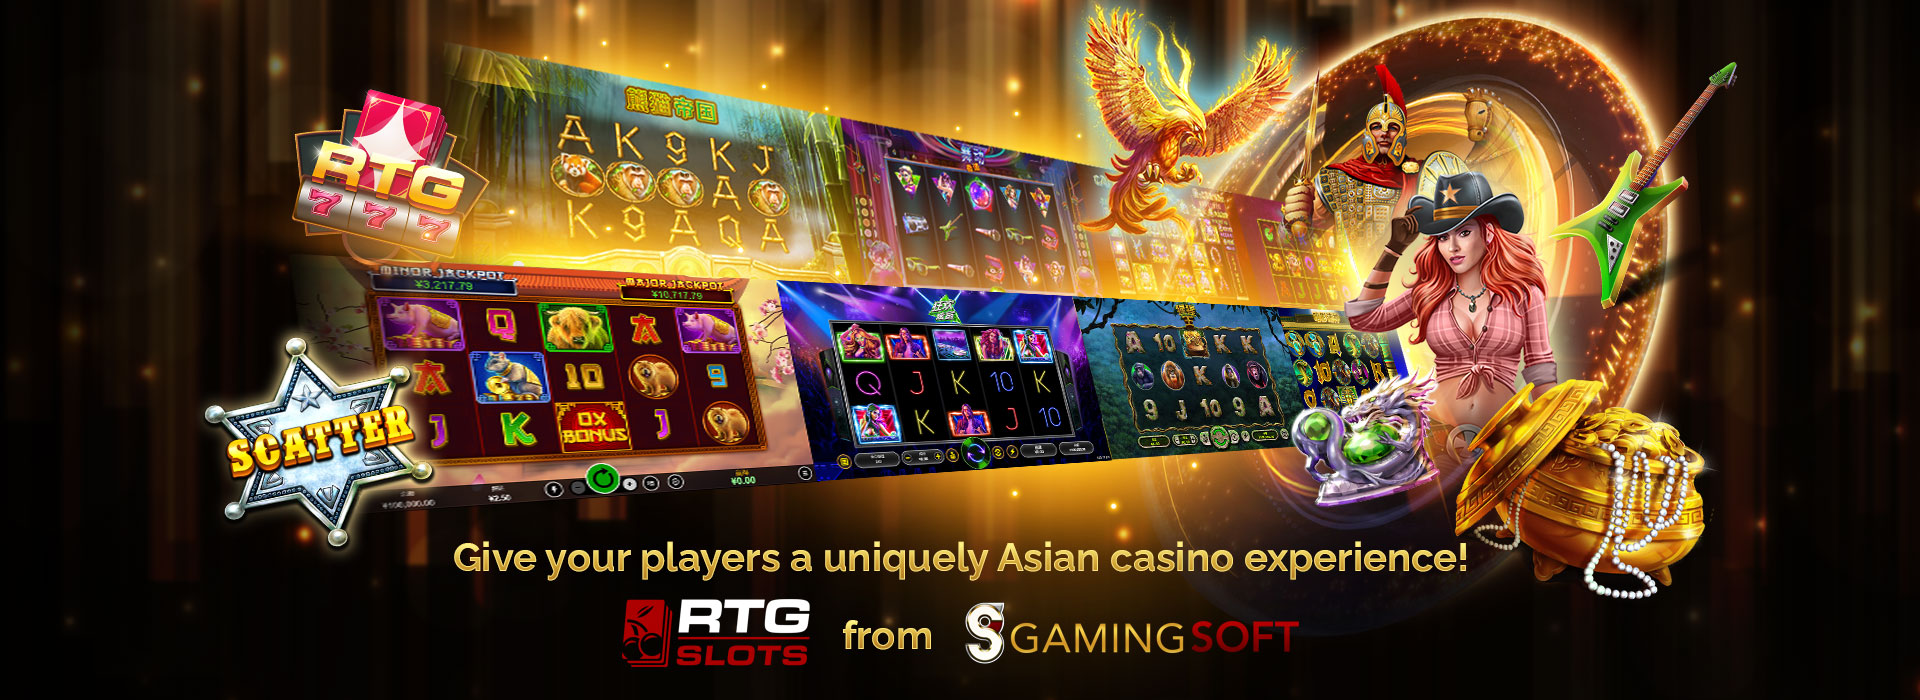 GamingSoft is Thrilled to Welcome RTG Gaming the New Online Casino Software on Board and Listed under GamingSoft's Provider Dataset - GamingSoft